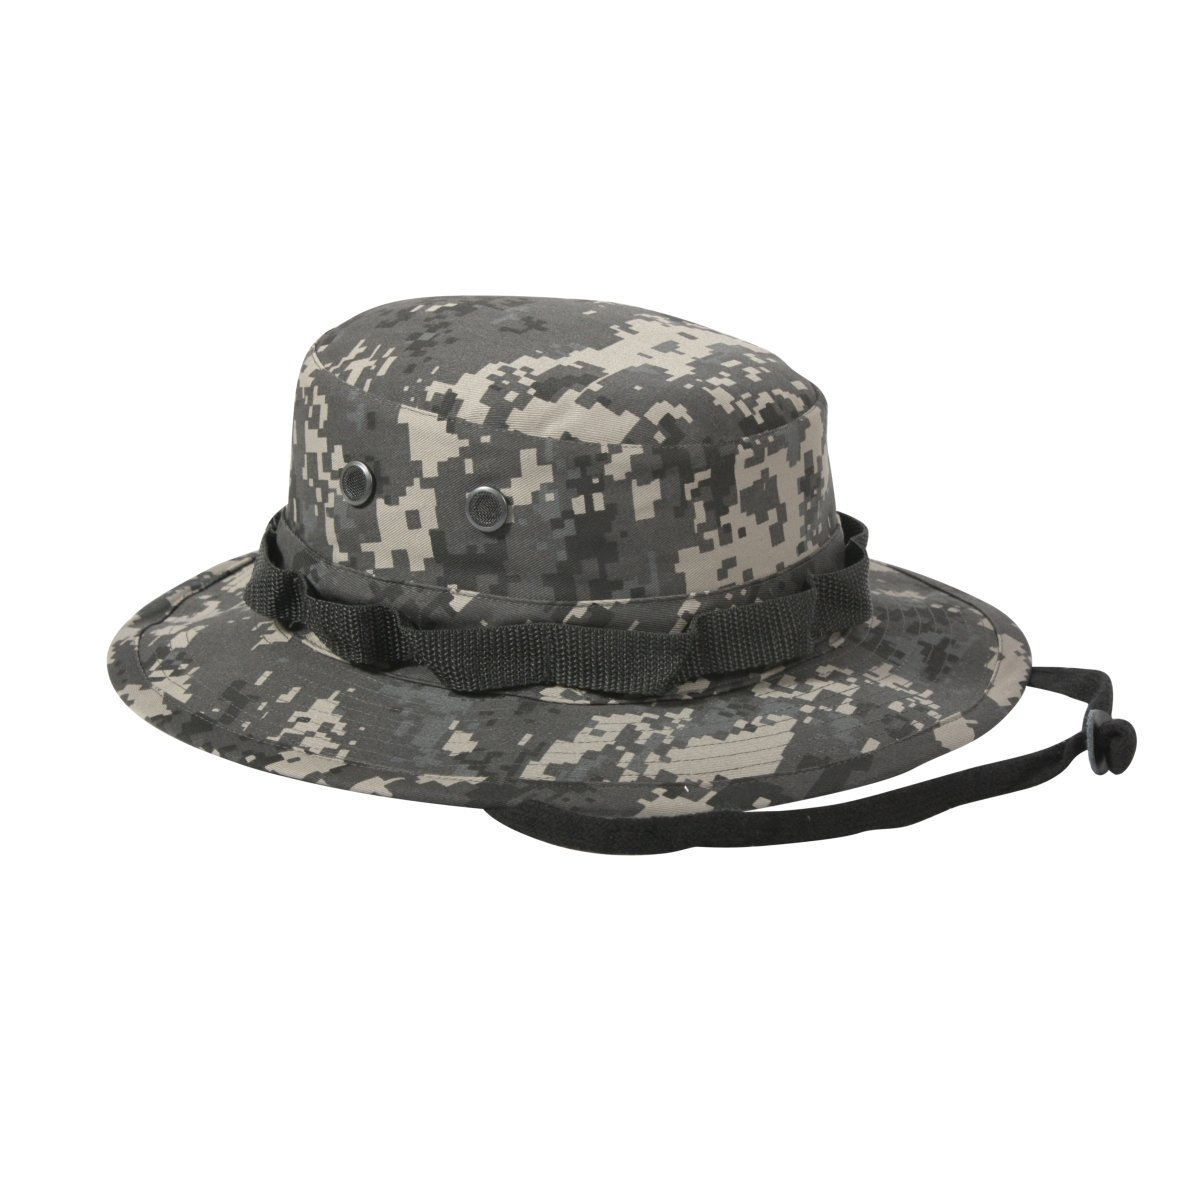 5839 Rothco Subdued Urban Digital Camo Boonie Hat